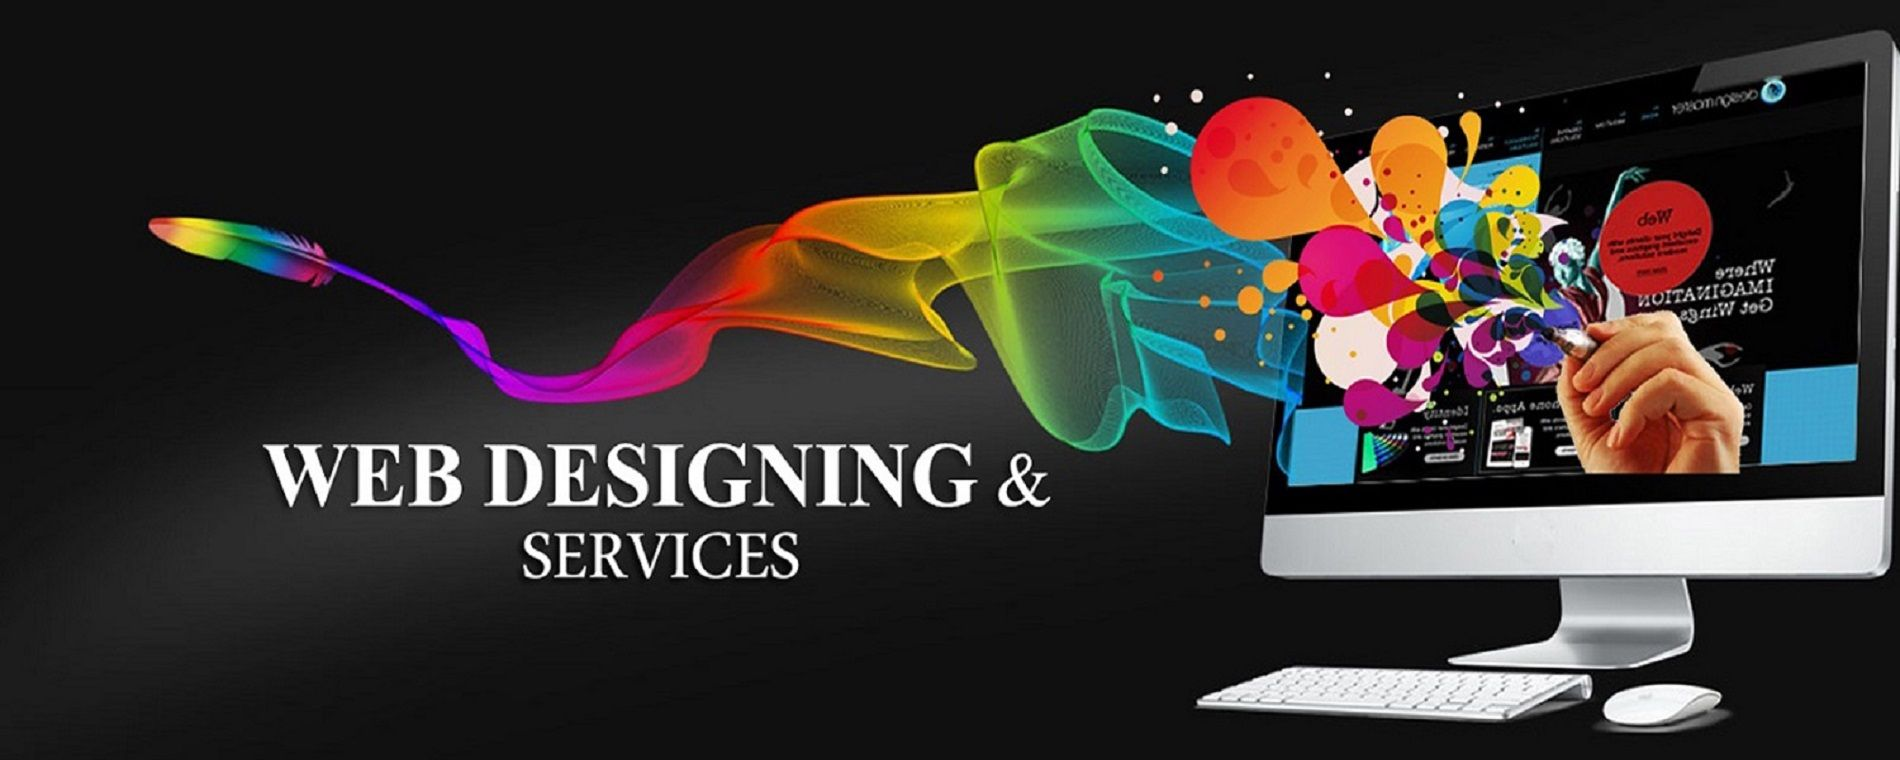 Website Designing Services Uae Website Design Services Website Design Company Fun Website Design